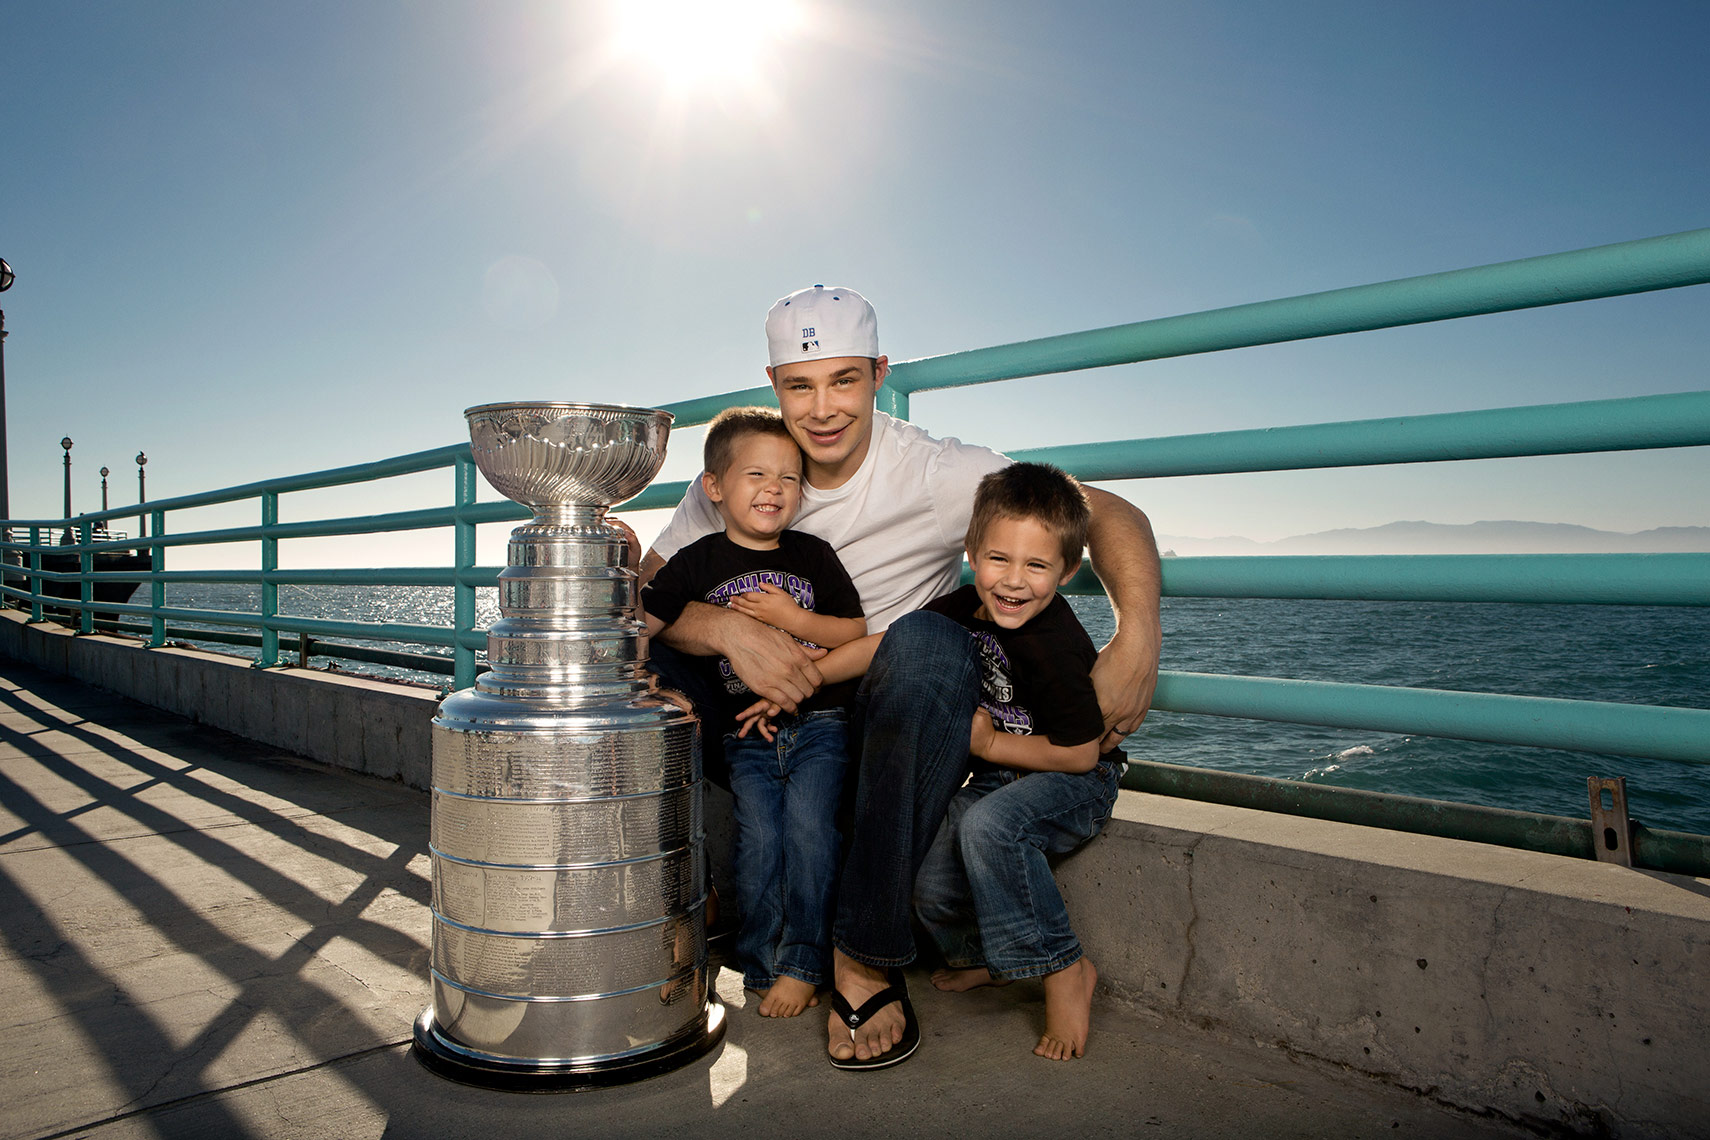 20120625_dustin-brown-cup-772-web